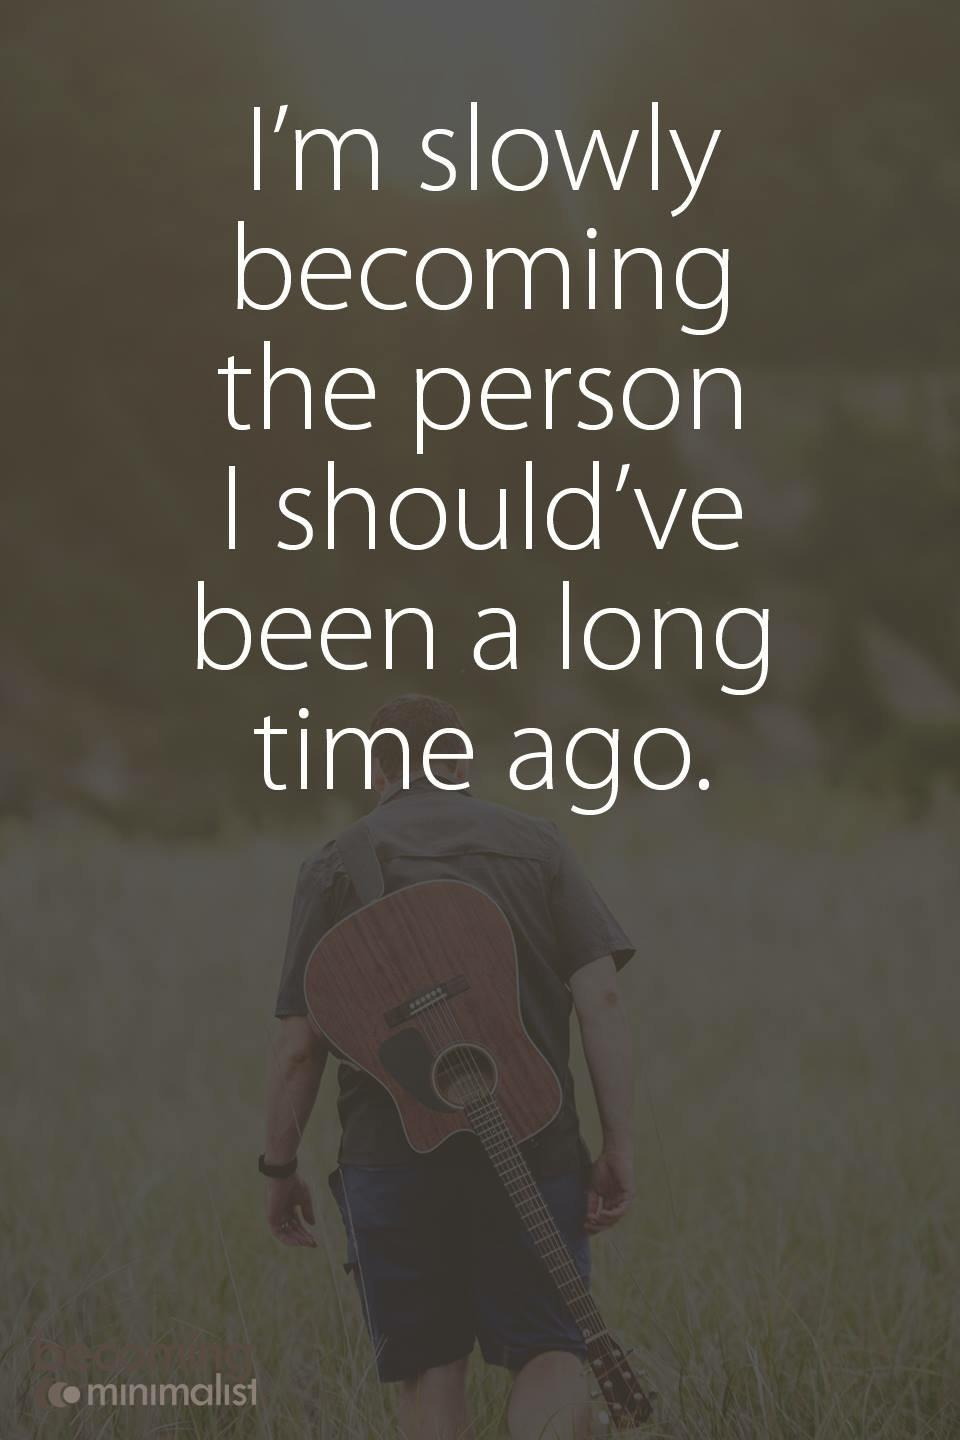 [image] It's never too late to be the person you want to become.